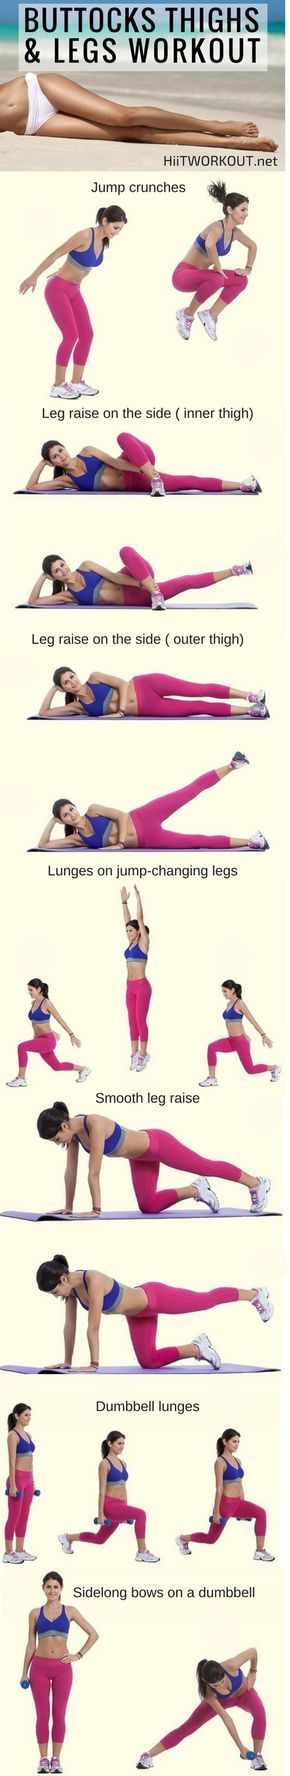 This 7 simple exercises that will give you slender legs in almost no time. Try to do at least 30 repps of each set.